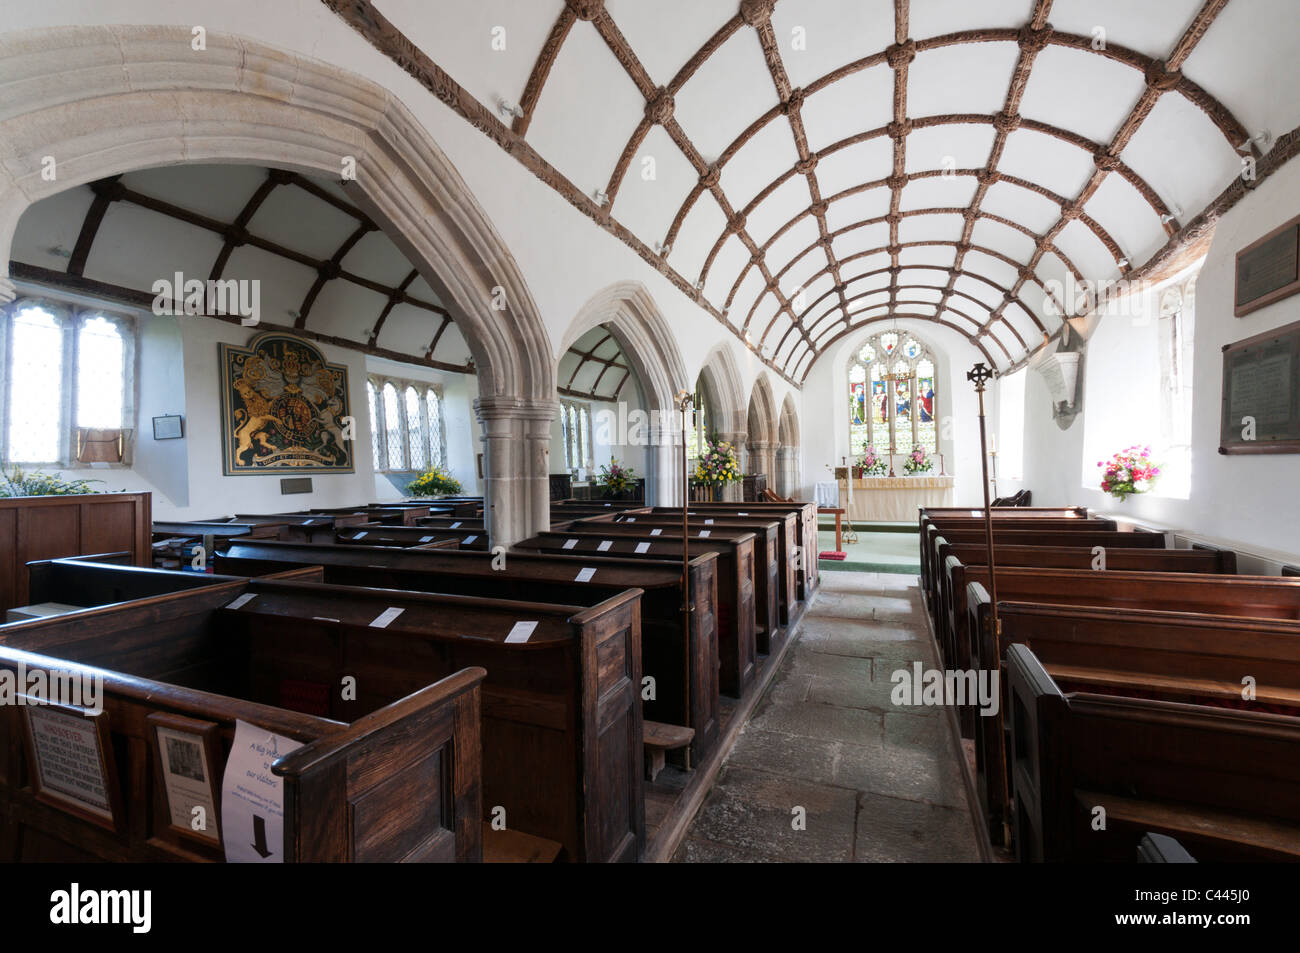 The interior of St Sampson's Church in the Cornish village of Golant, showing the wagon vaulting of the aisles. - Stock Image